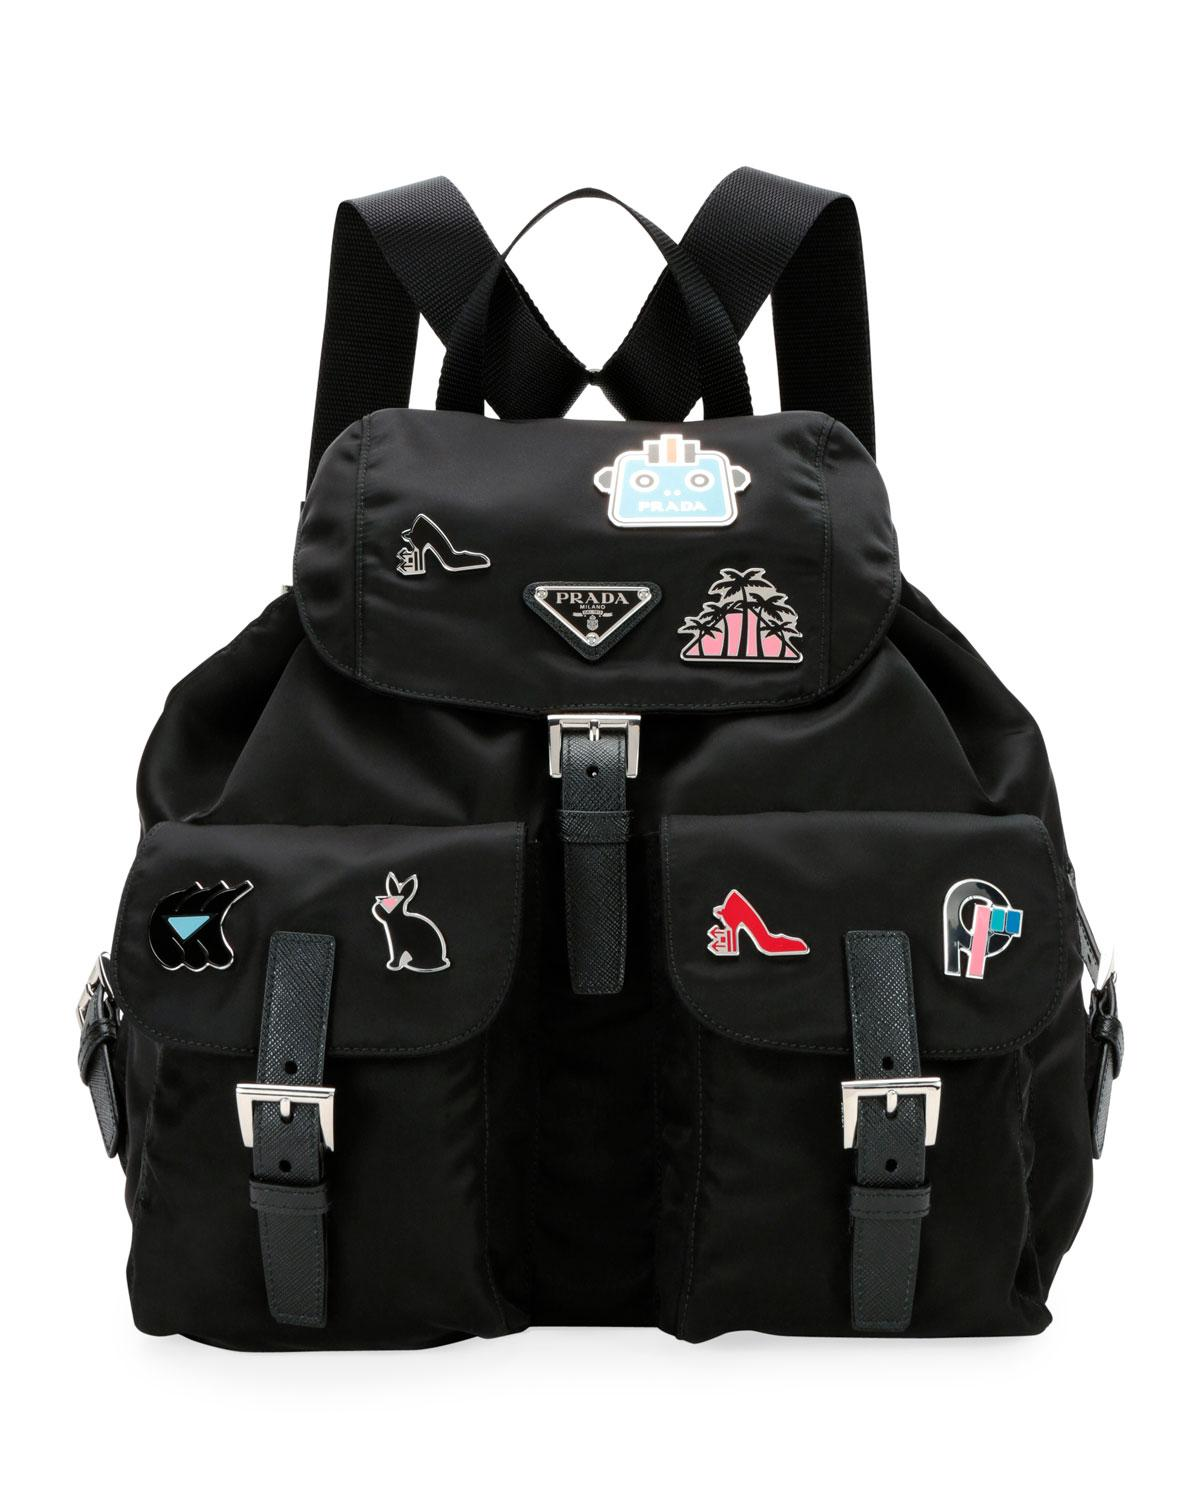 cbec1f9cffad Prada - Black Nylon Backpack With Graphic Appliqués - Lyst. View fullscreen